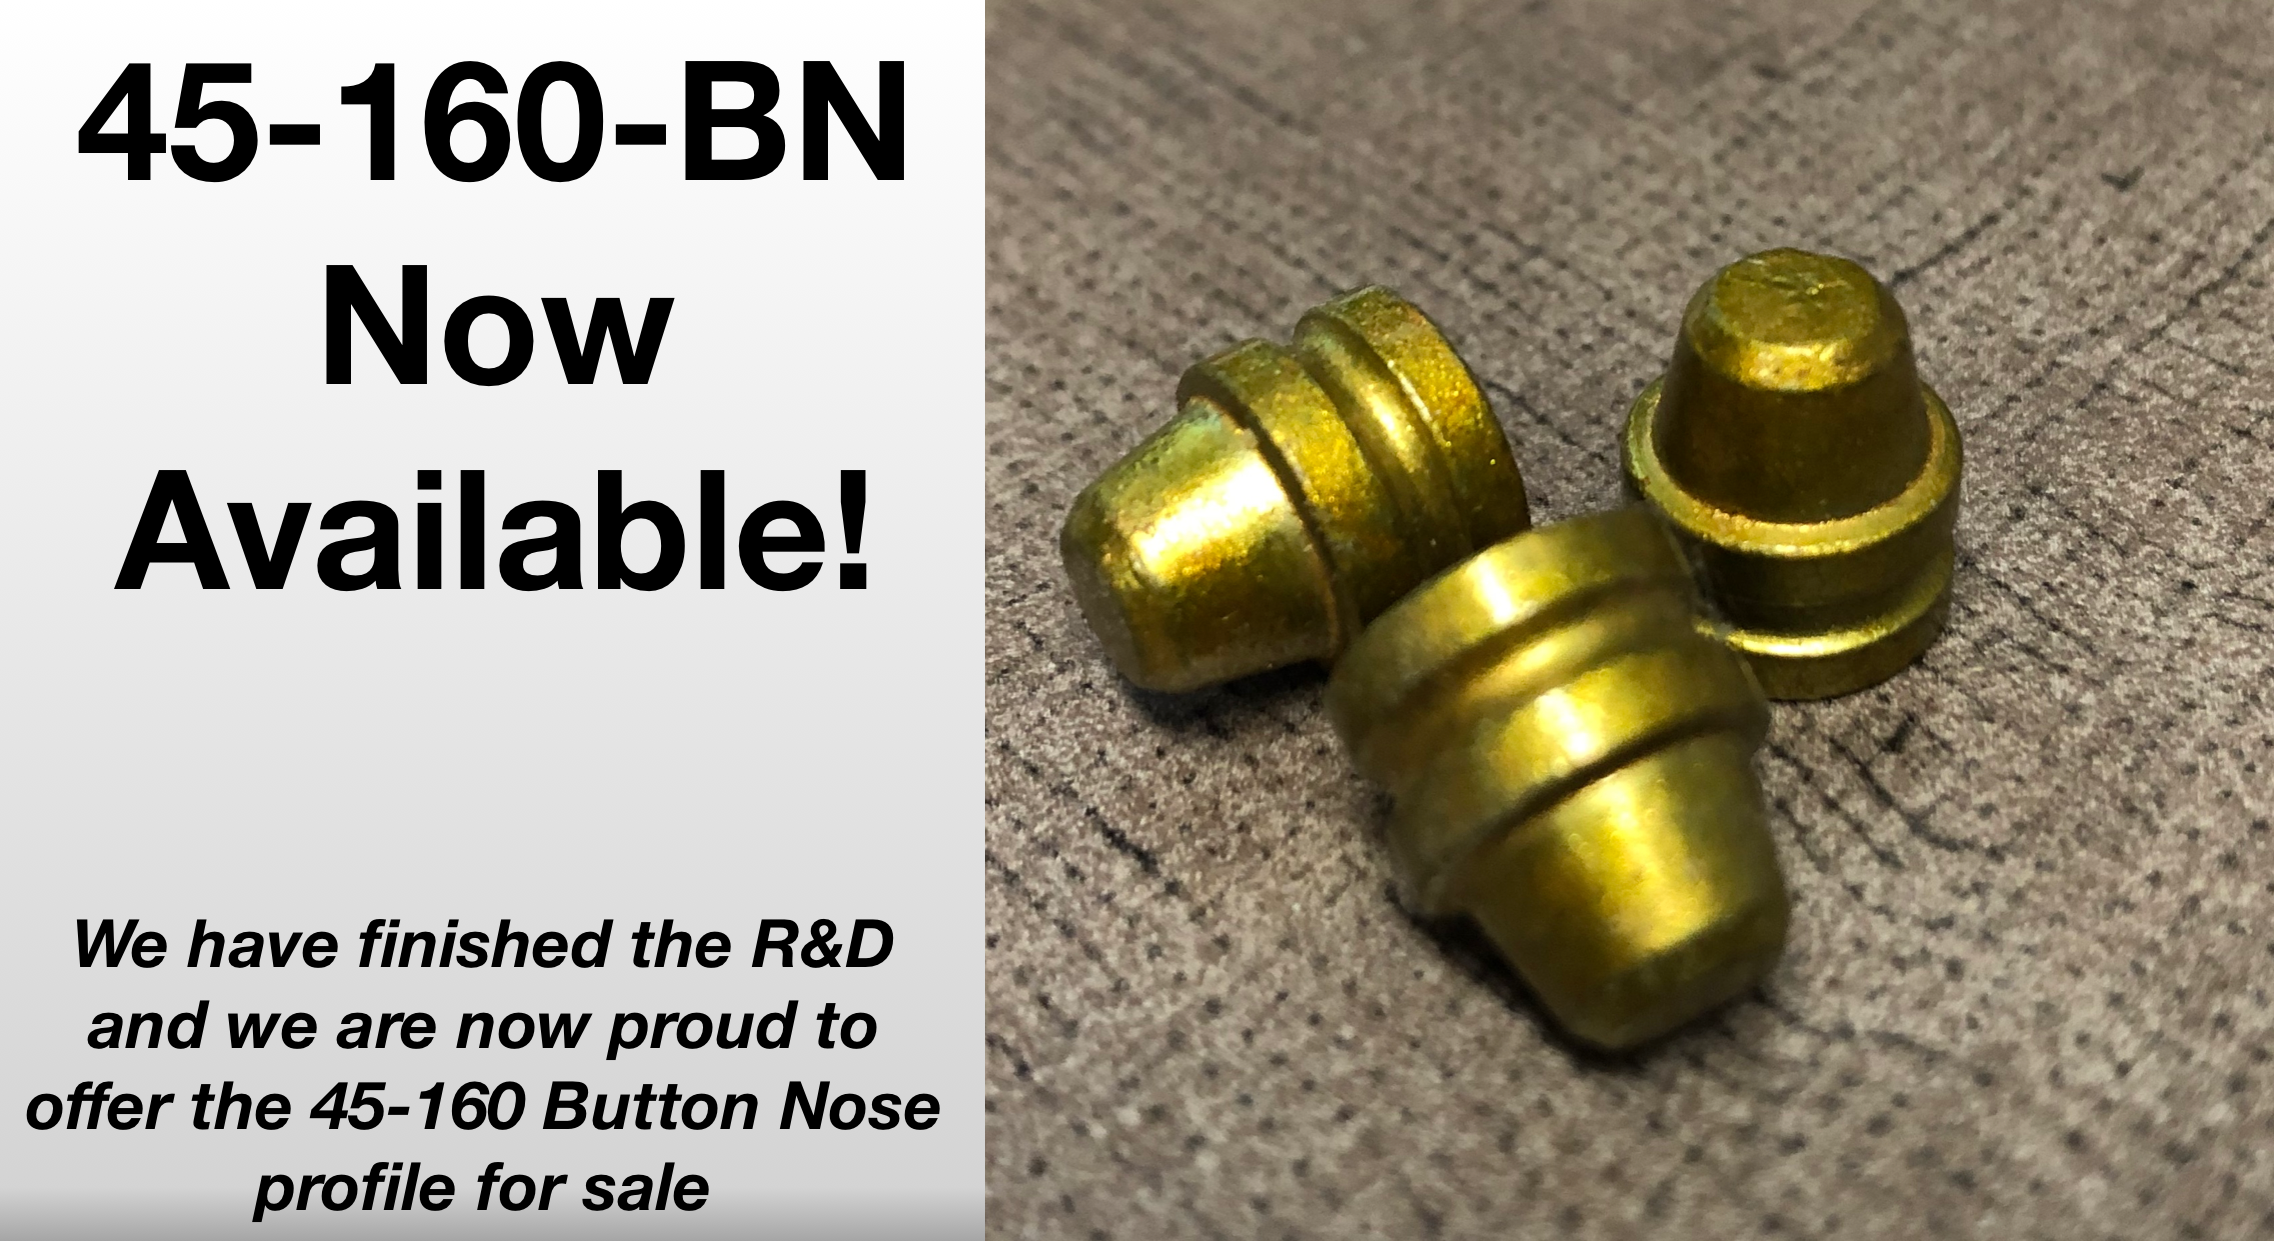 45-160-BN-FB now available sized! 45-160-BN